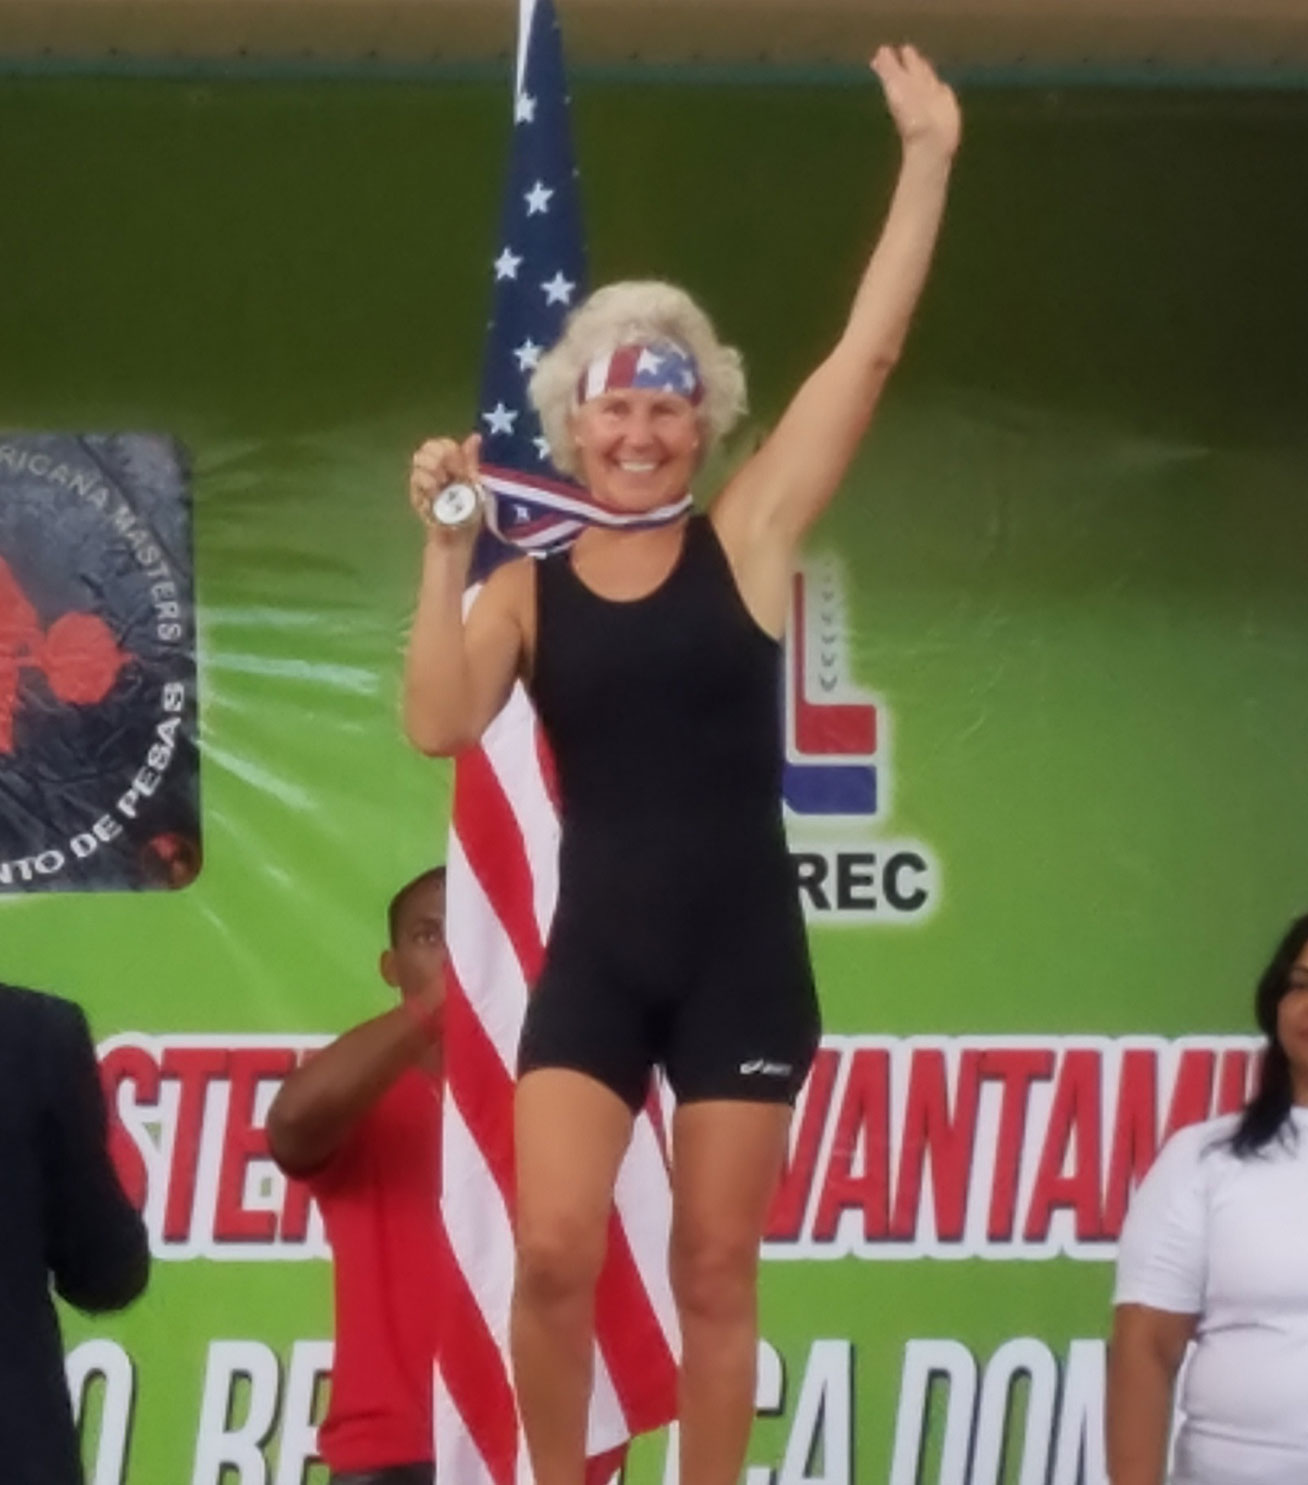 Laura Eiman Gold Medal Olympics